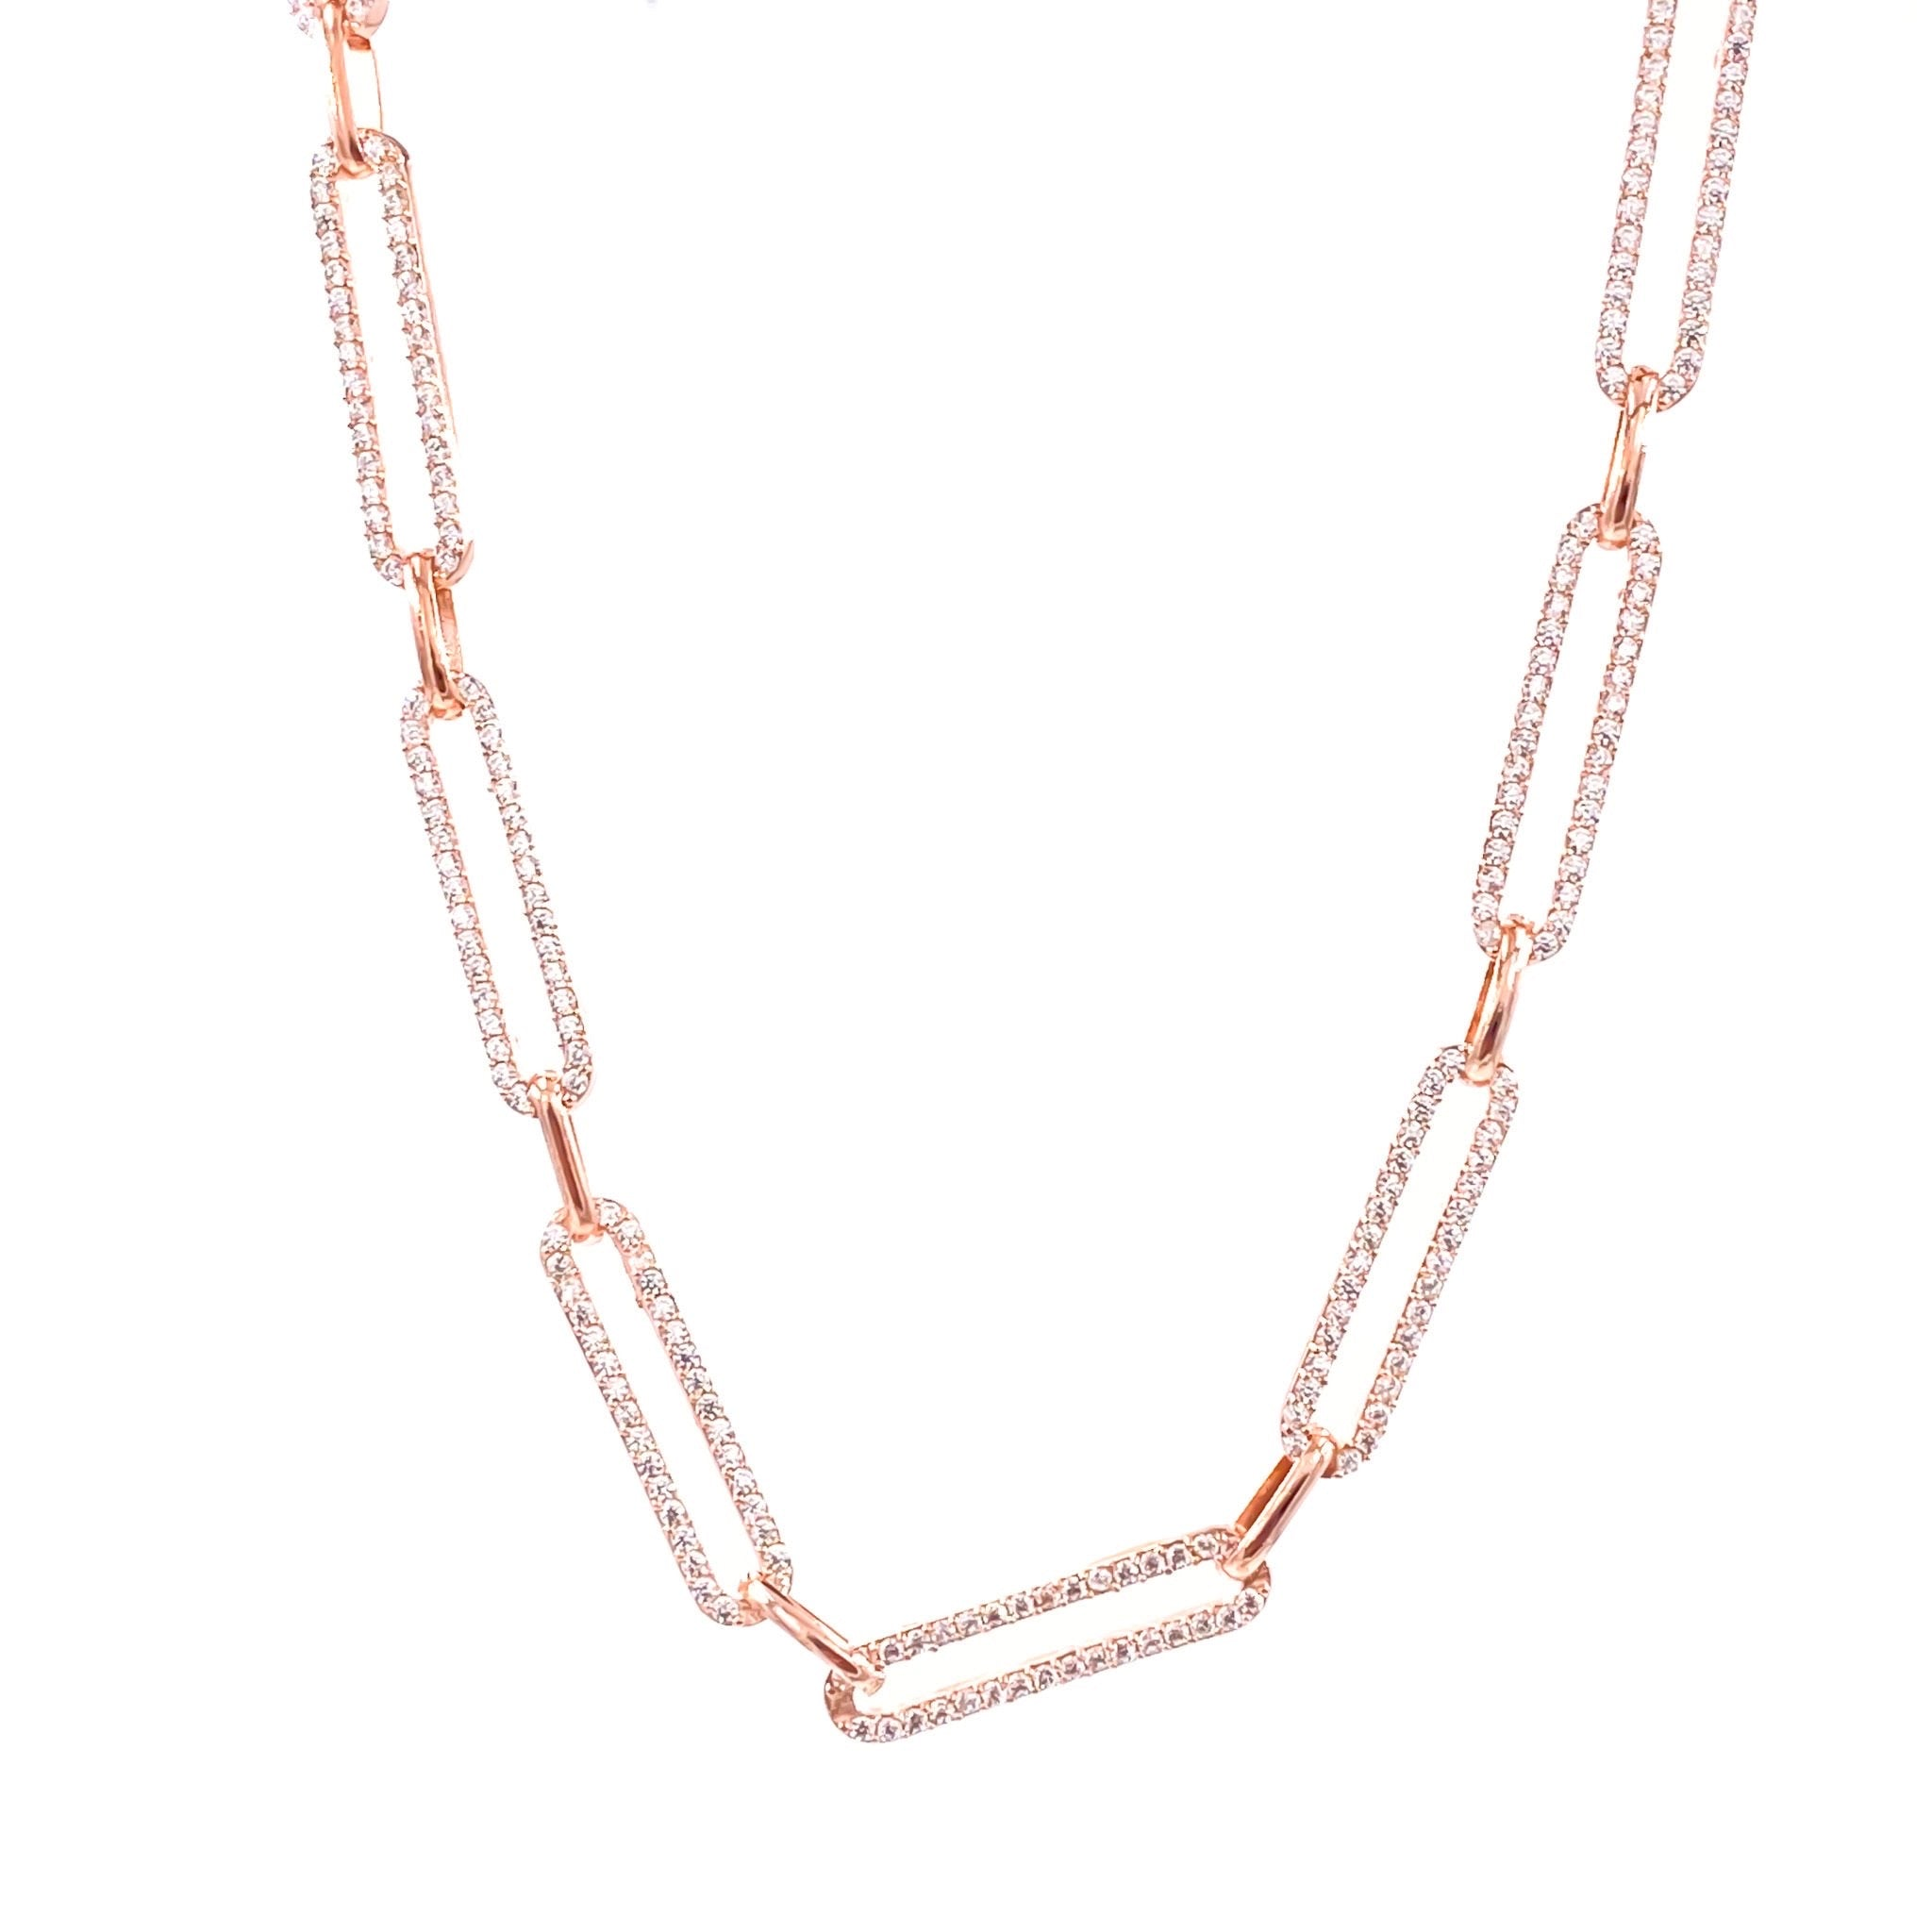 Gemstone Drawn Chain Necklace